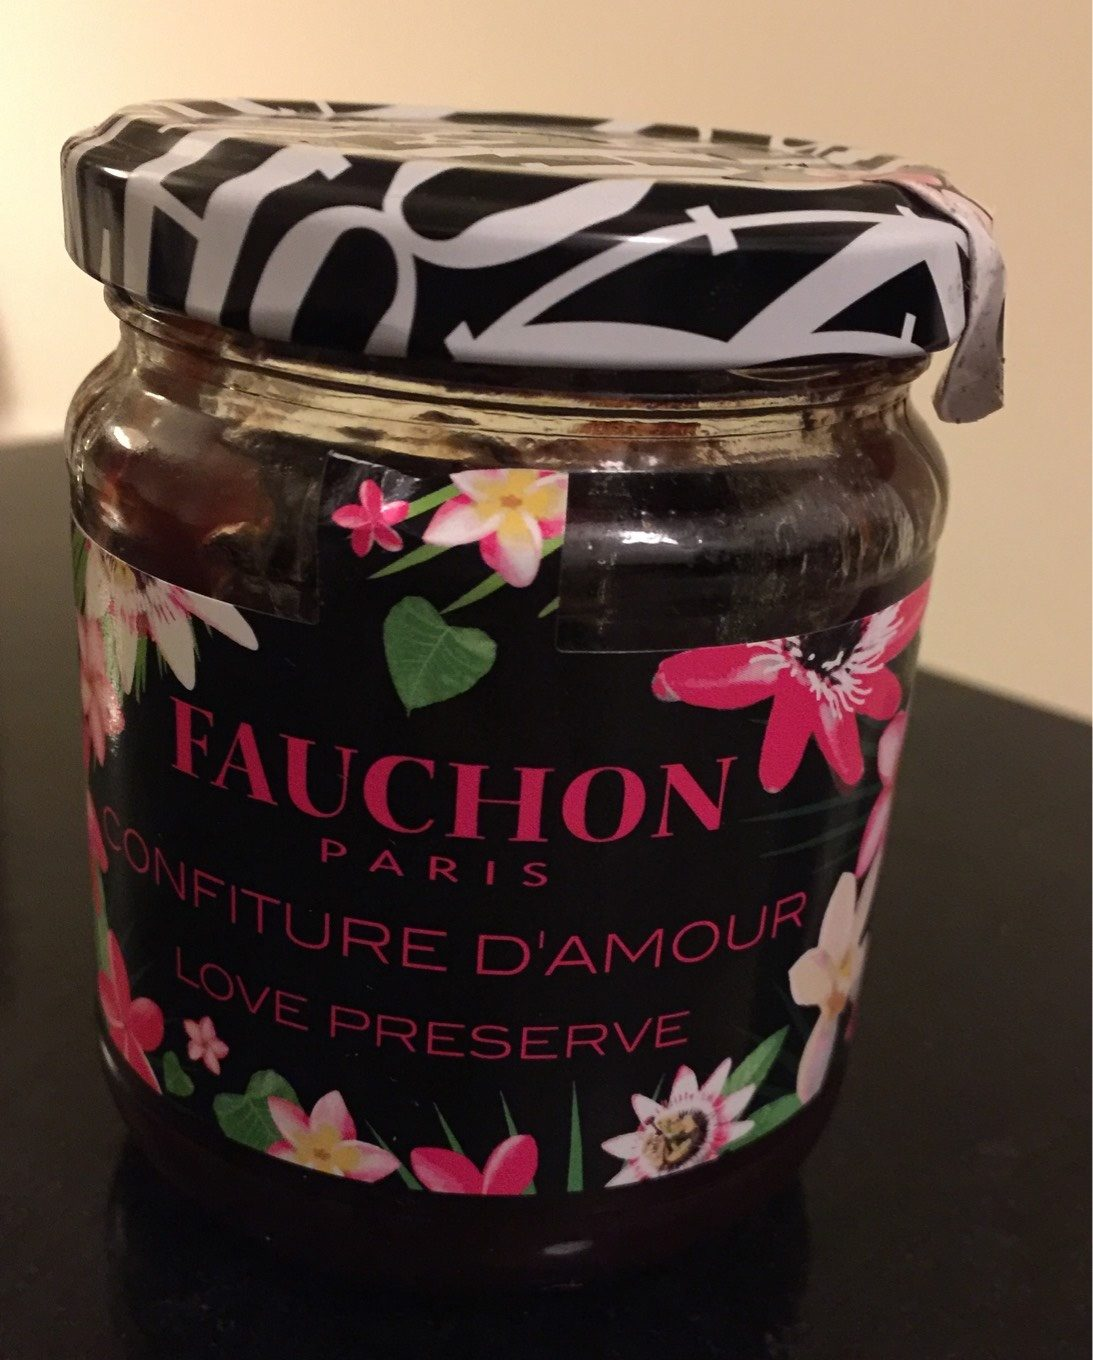 Confiture d'amour - Product